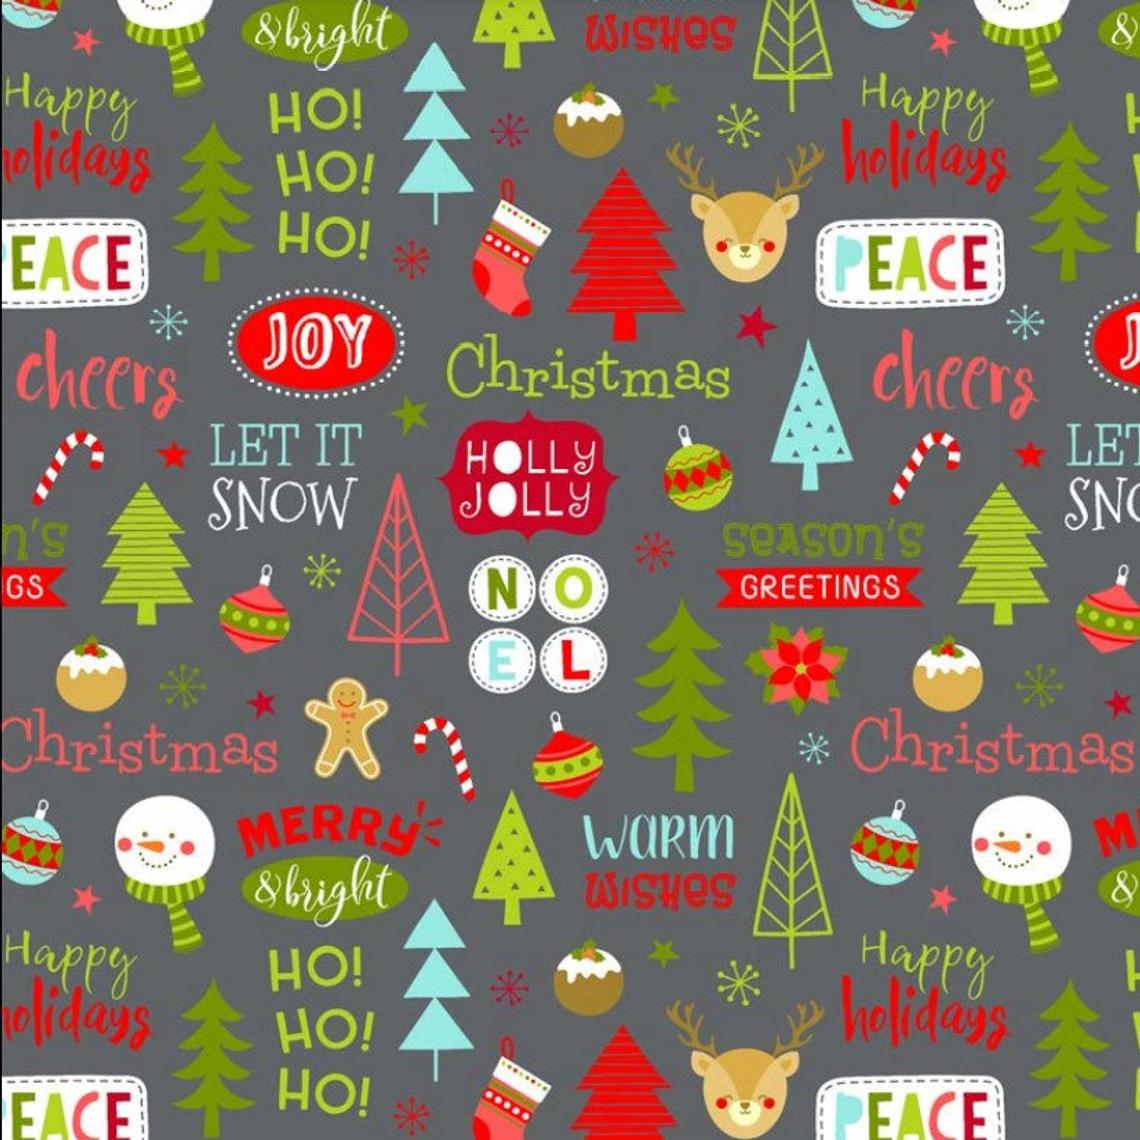 "Christmas Novelty Trees Ho! Let it Snow Stocking Baubles Gingerman Excellent Quality 100% Cotton Fabric Craft Sewing 60"" Wide Per Metre"